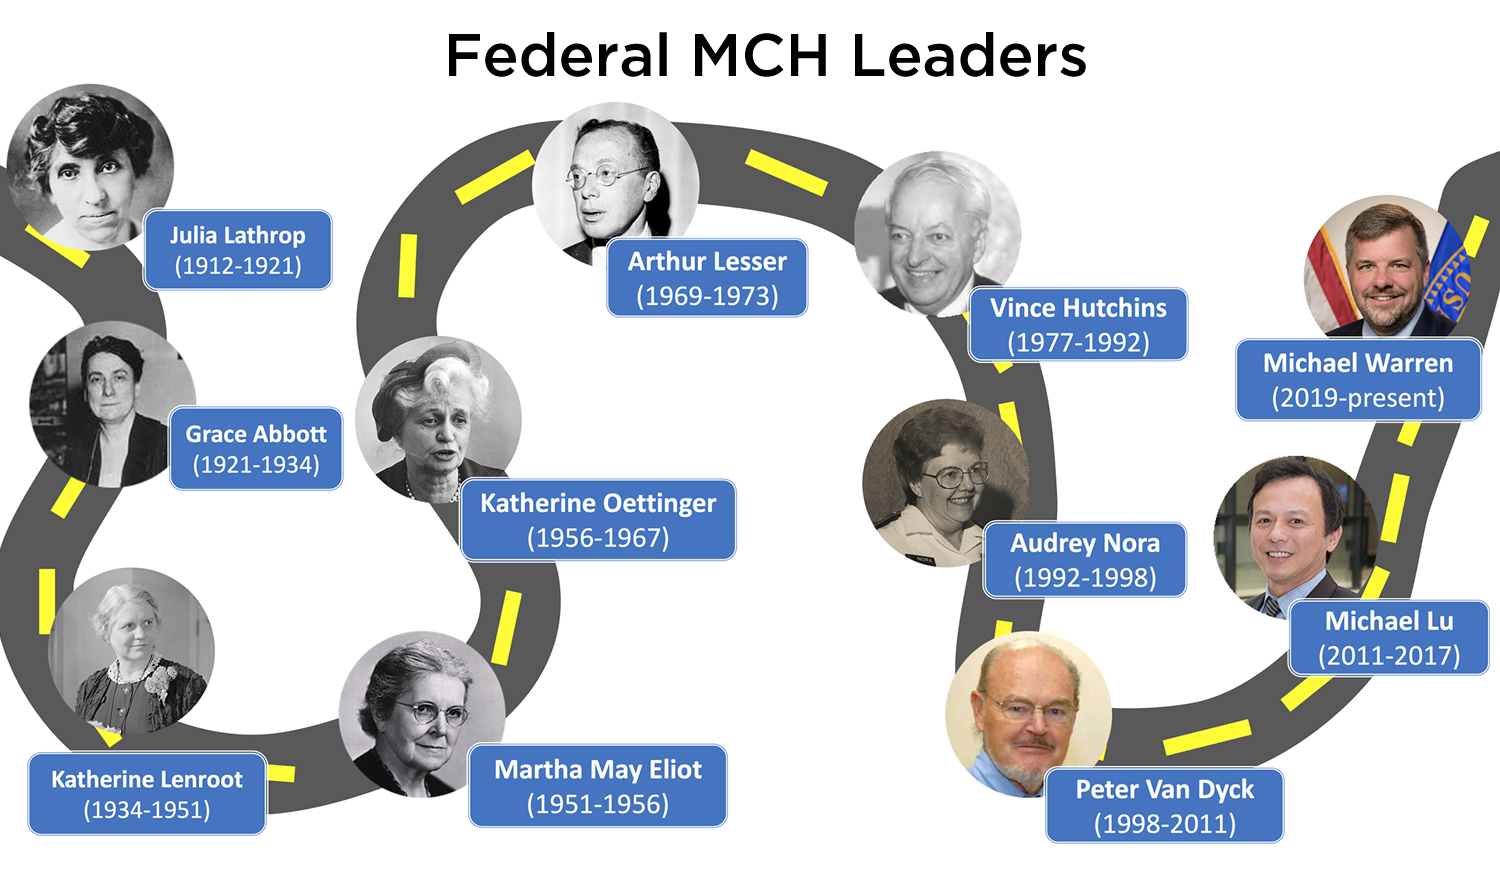 A map showing the federal leaders below